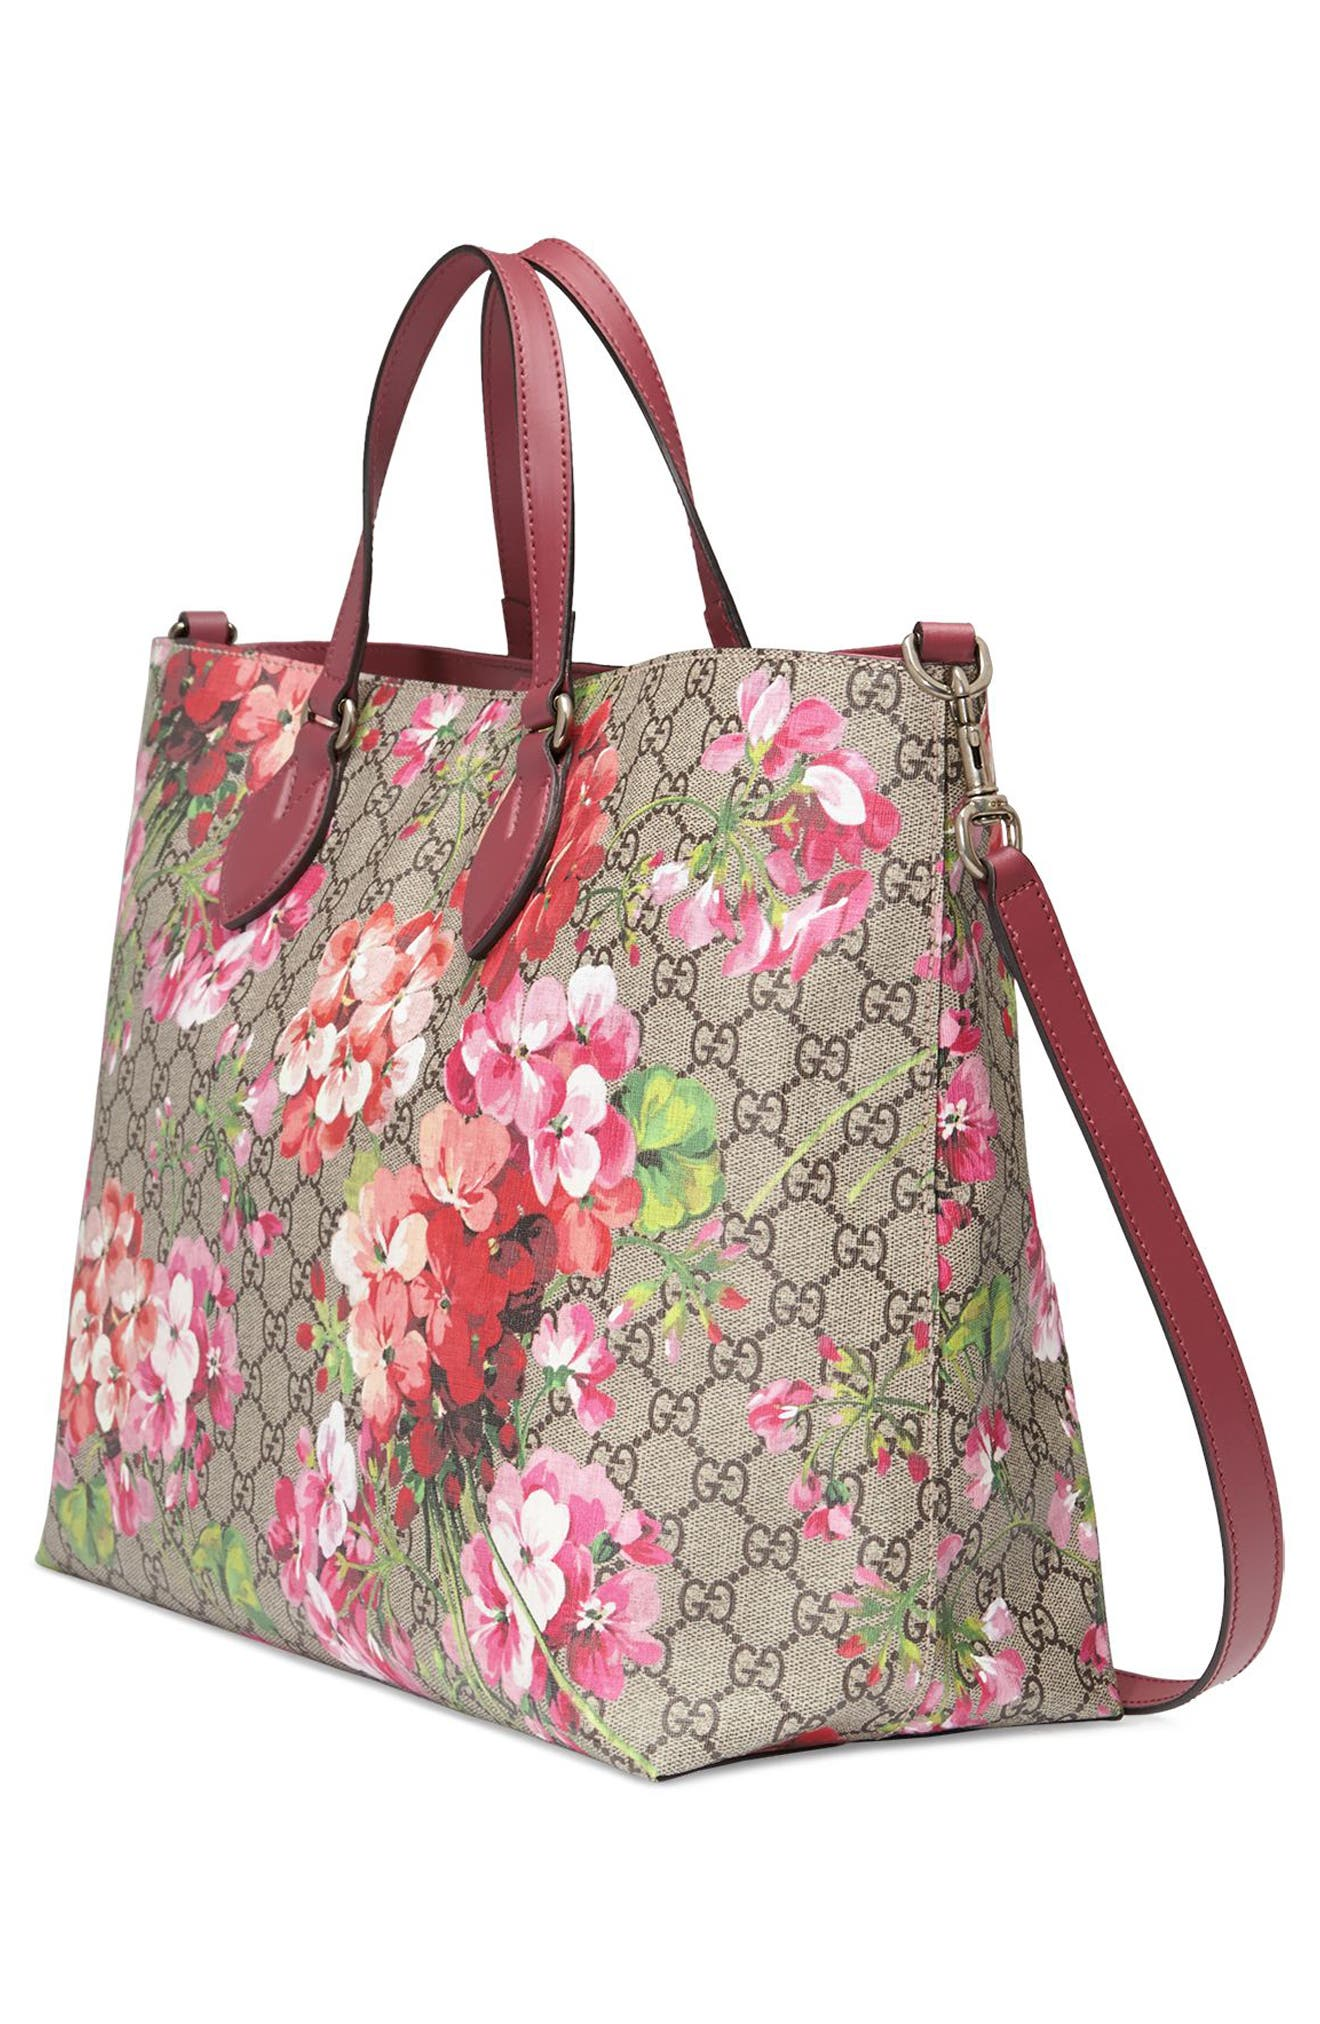 Soft GG Blooms Tote,                             Alternate thumbnail 4, color,